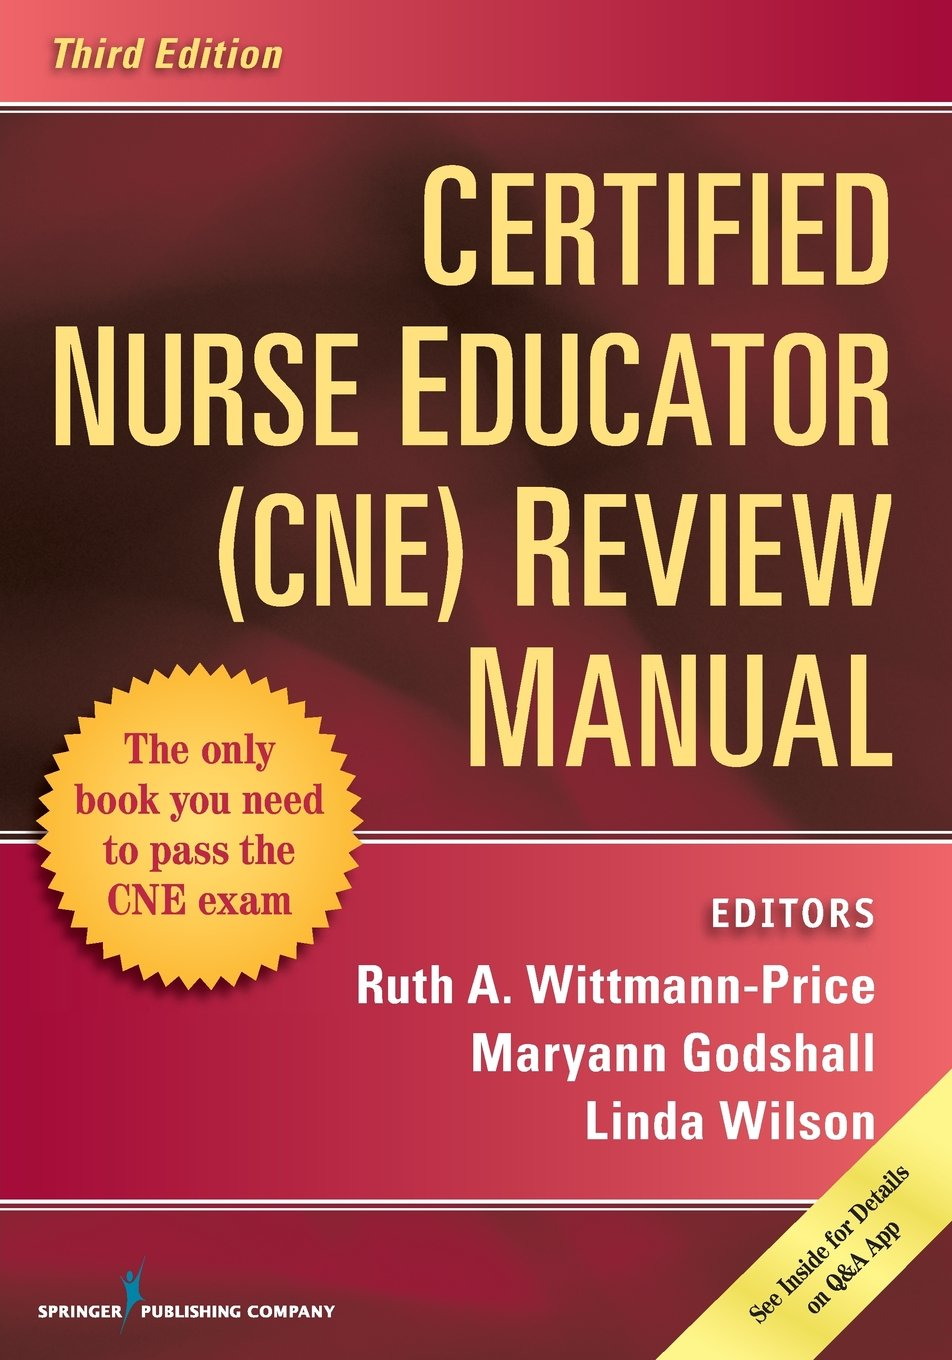 Certified Nurse Educator (CNE) Review Manual: Maryann Godshall PhD CNE CCRN  CPN, Linda Wilson PhD RN CPAN CAPA BC CNE, Ruth A. Wittmann-Price PhD RN  CNE ...